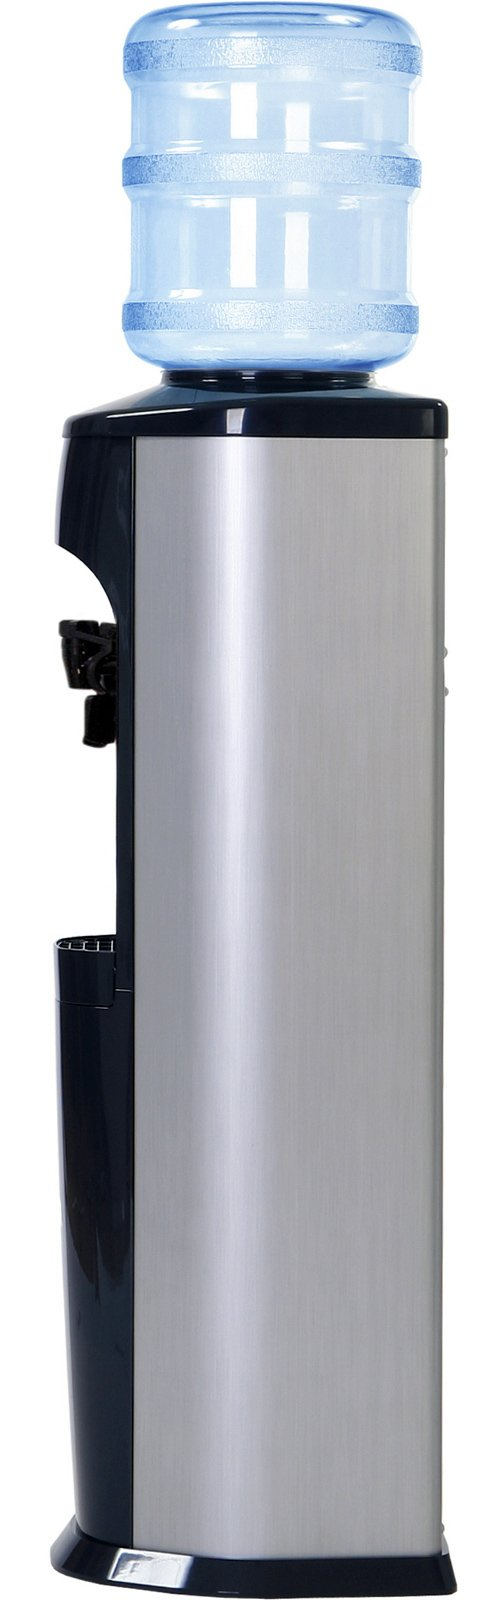 Clover B14A Hot and Cold Bottled Water Dispenser - Side View